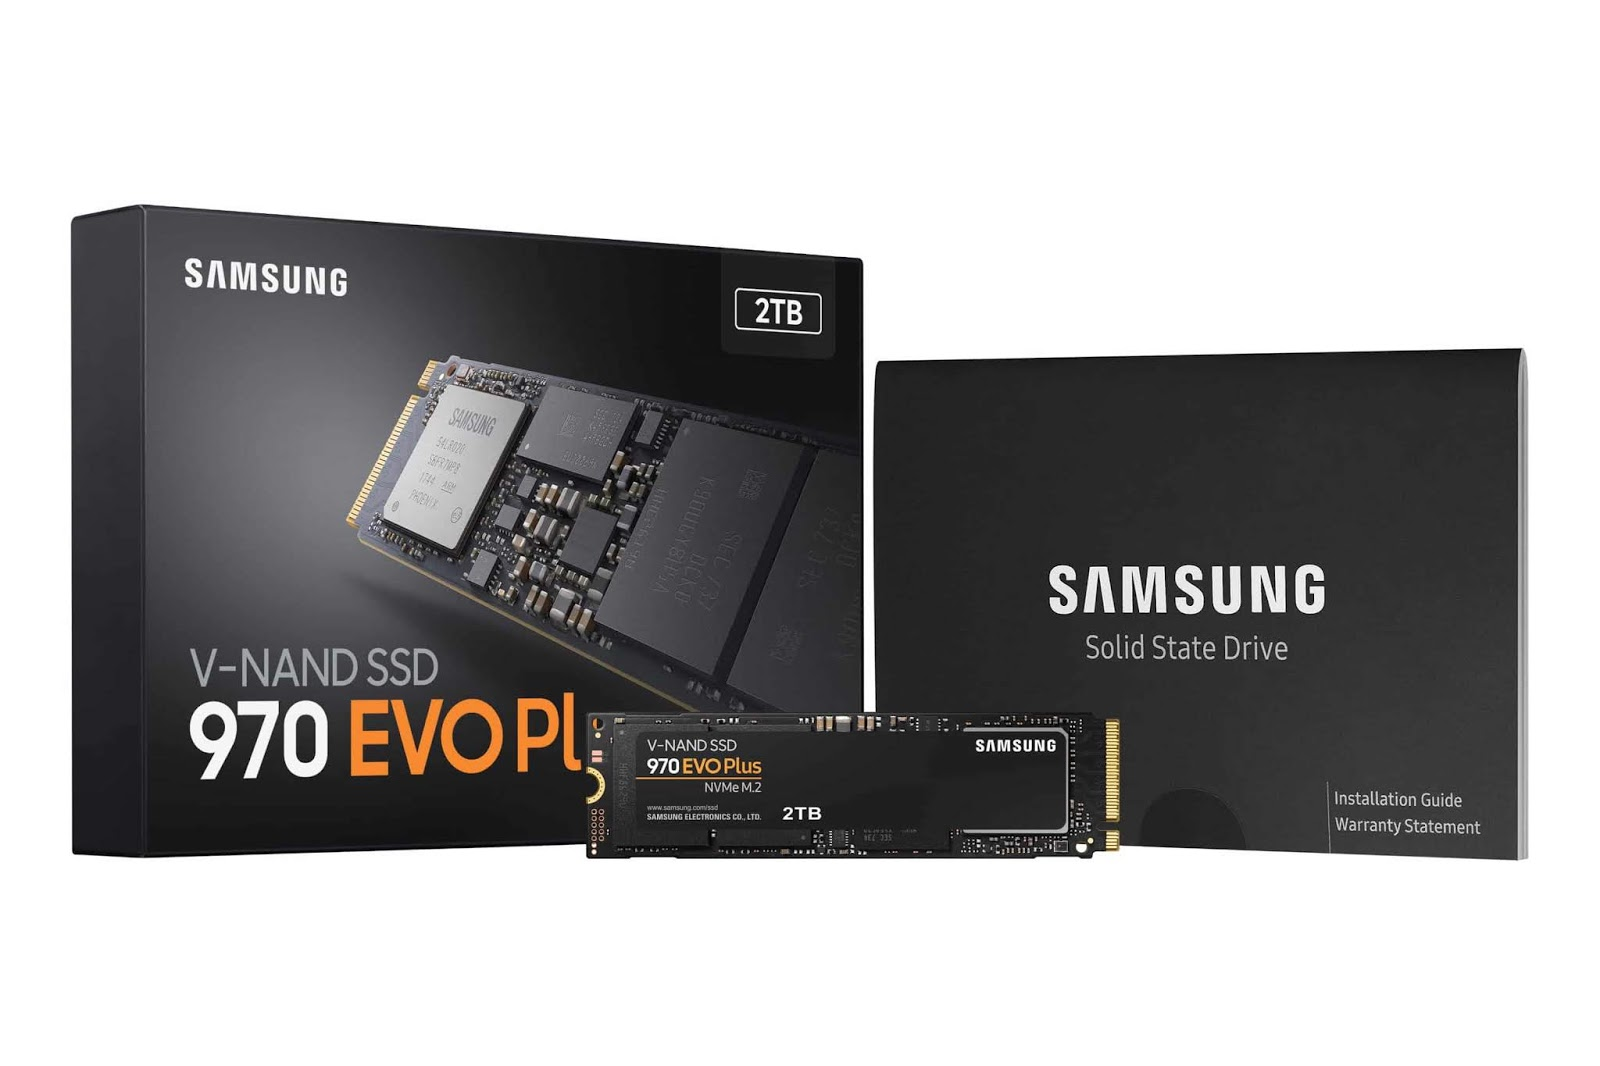 Samsung Electronics Sets New Performance Levels for Consumer NVMe SSDs with 970 EVO Plus